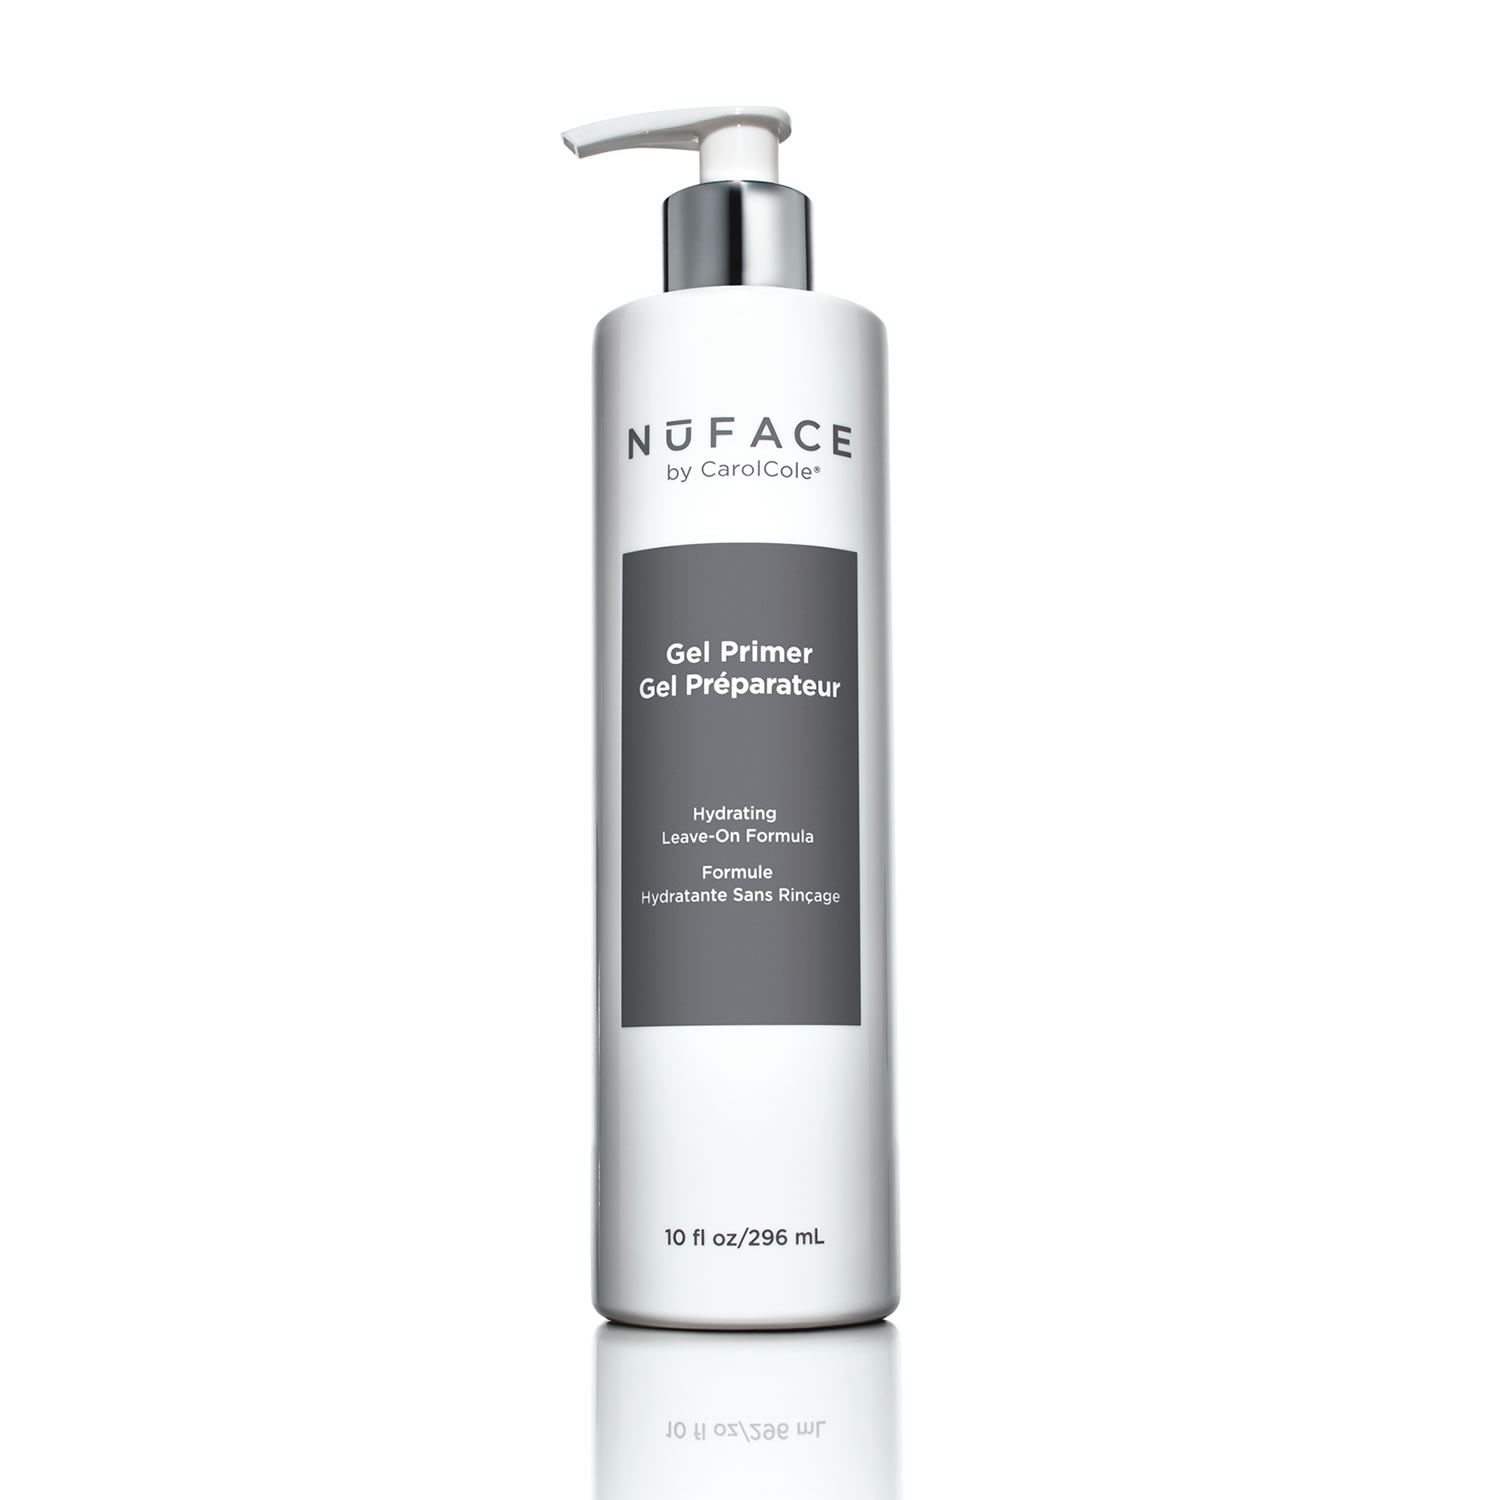 NuFACE Gel Primer Hydrating Leave-On Formula (10 fl oz / 296 ml)